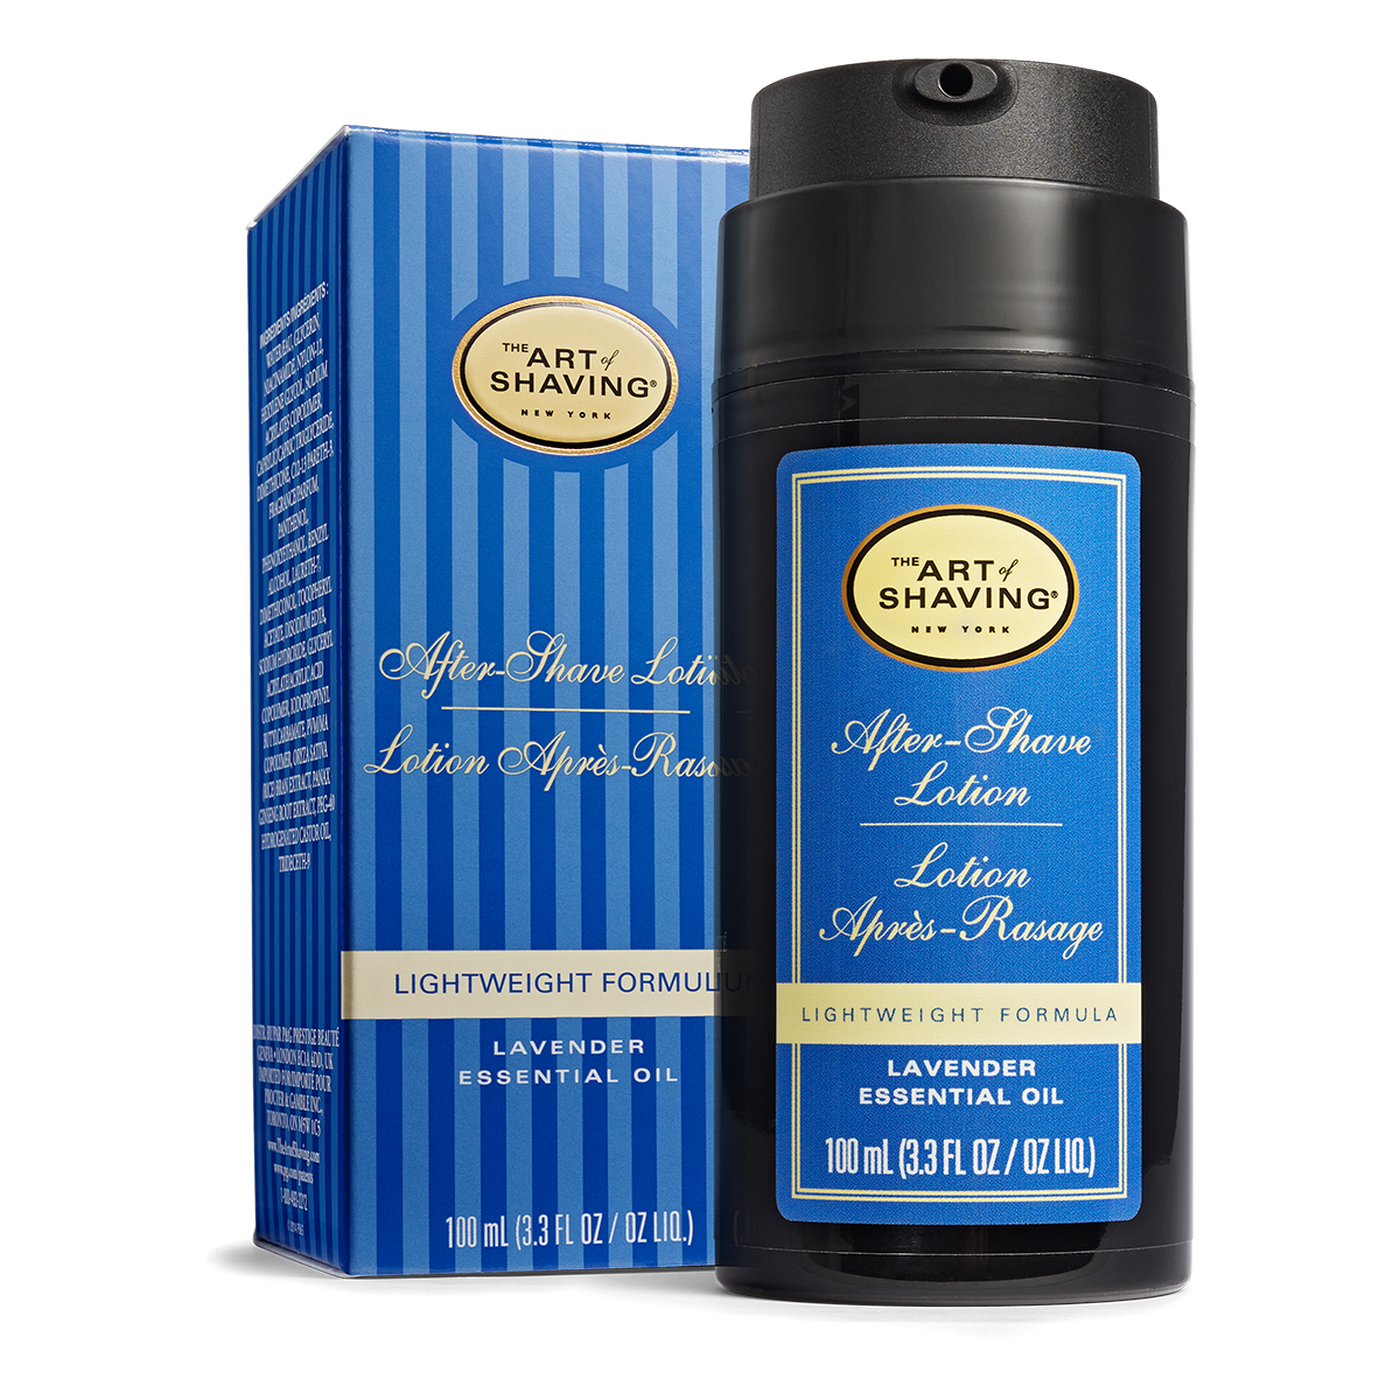 The Art Of Shaving: After Shave Lotion - Lavender